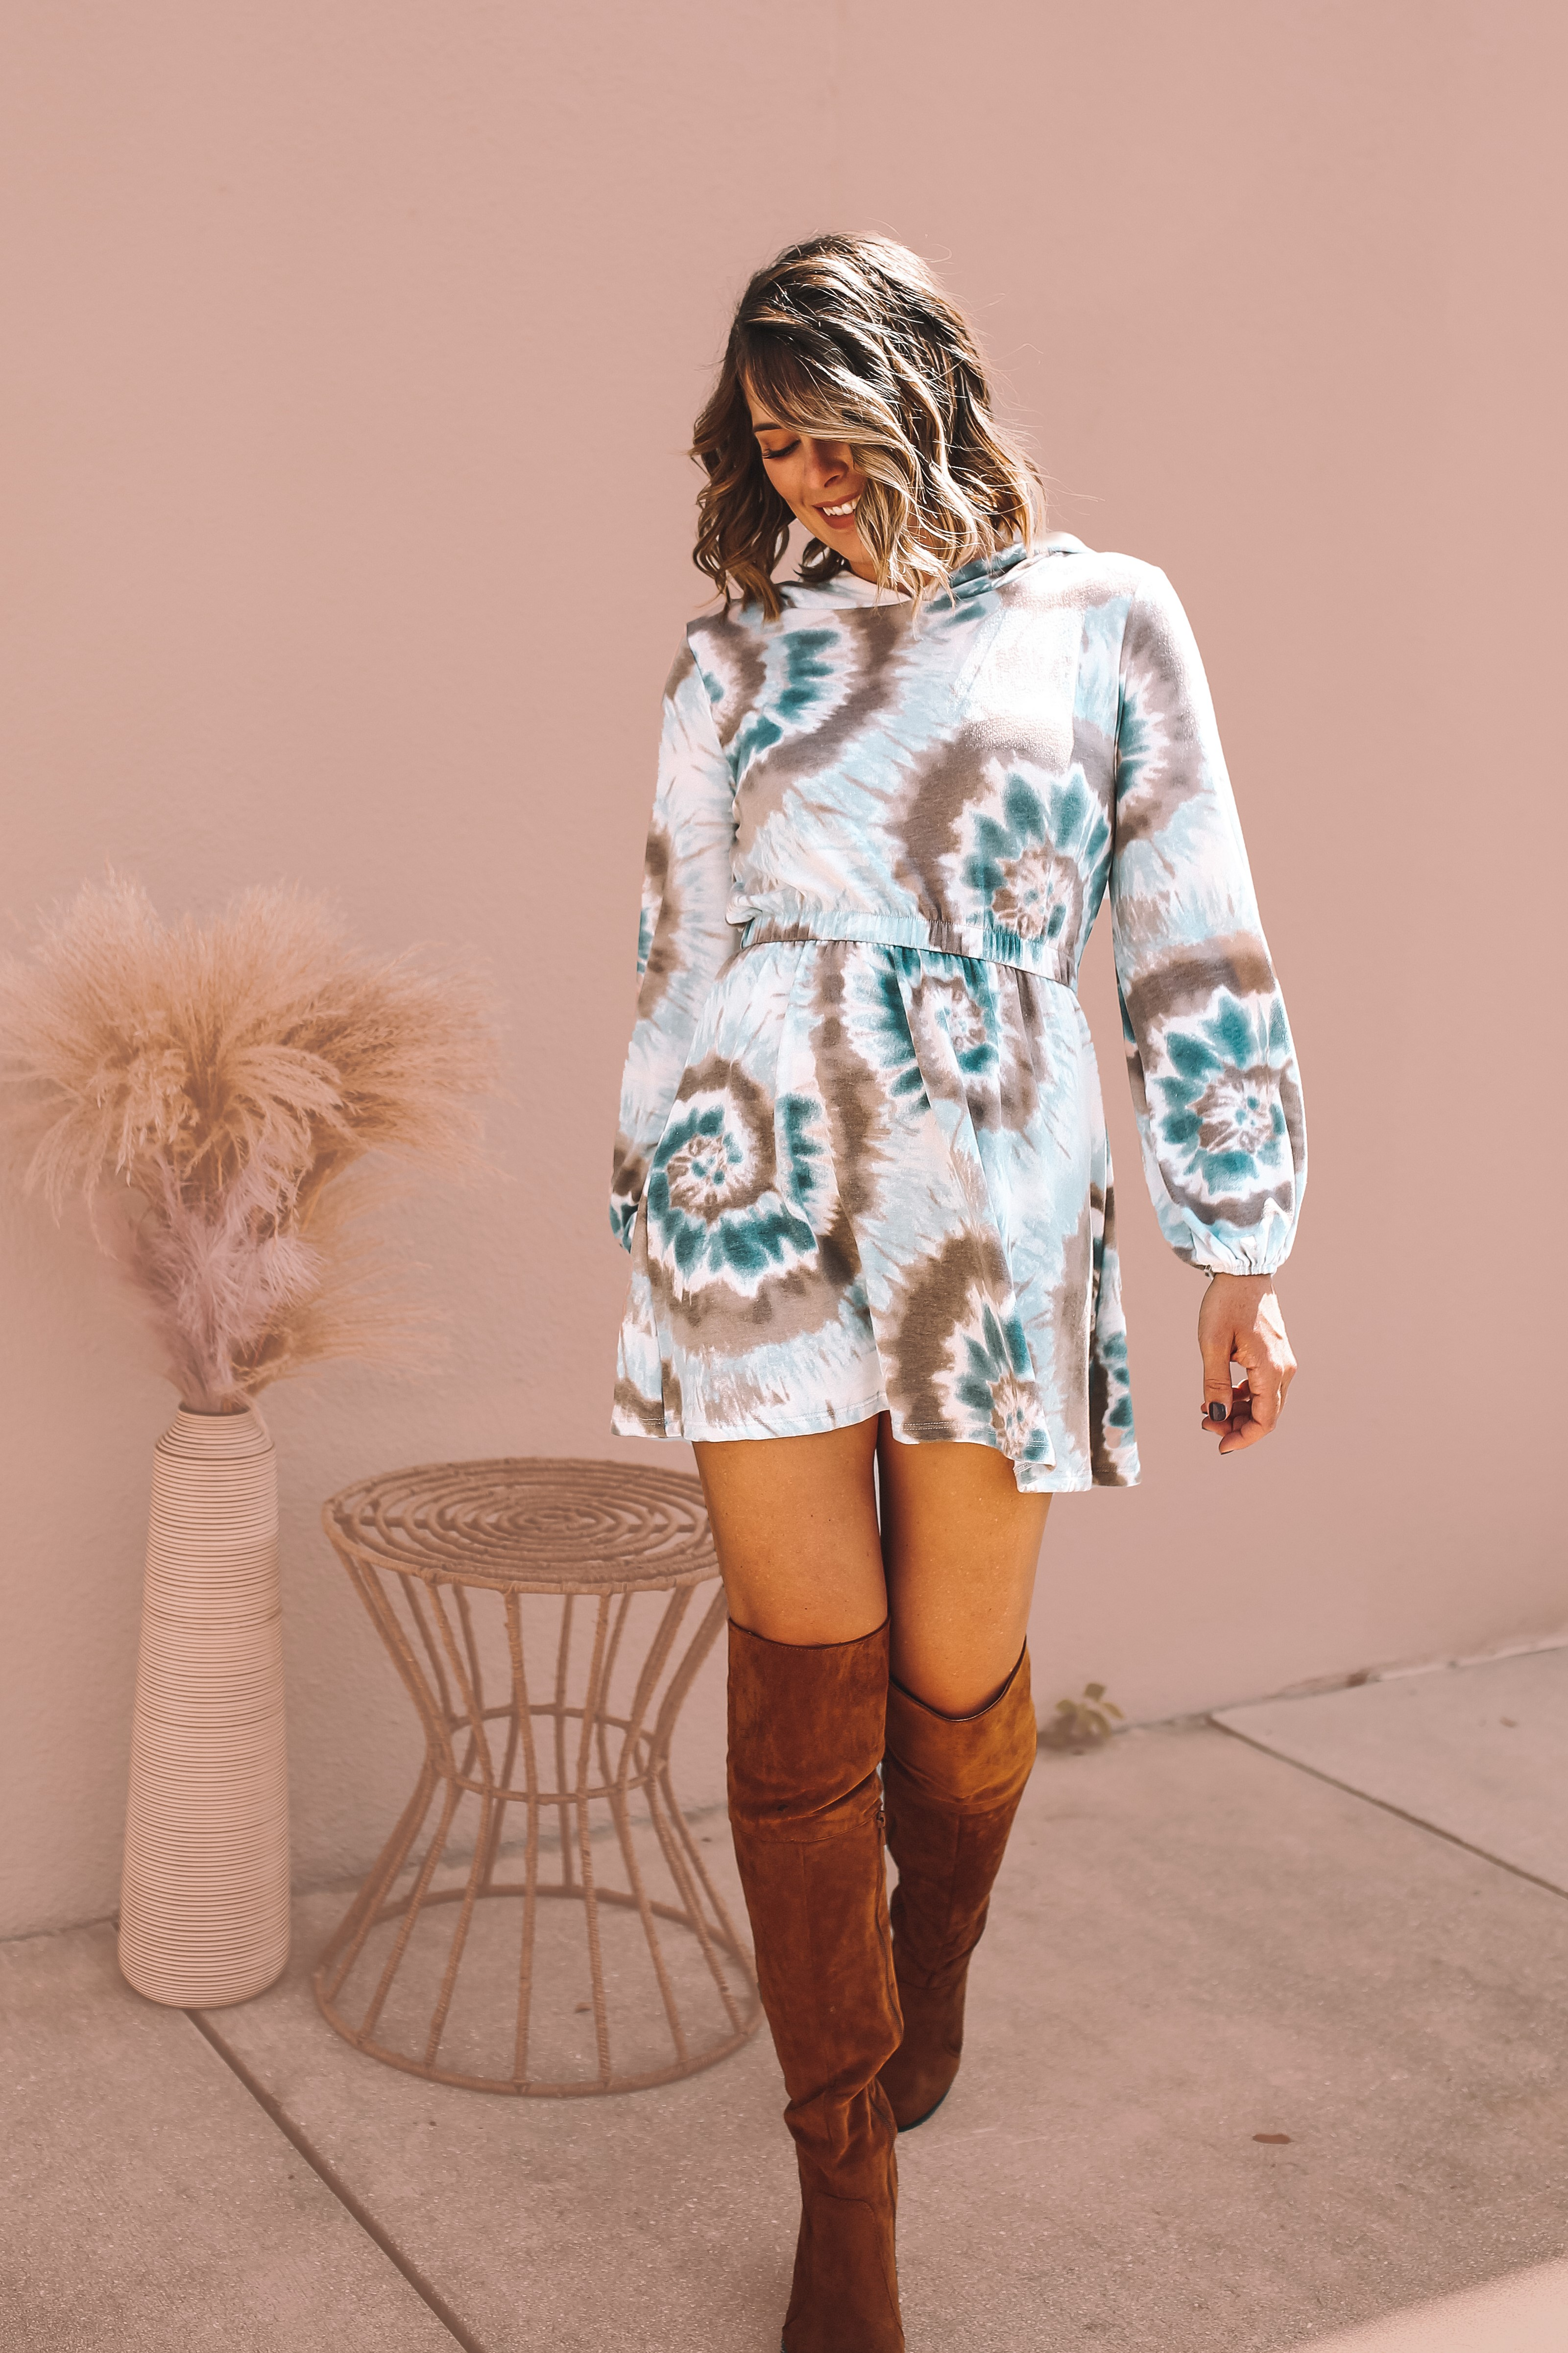 SHADES OF BLUE AND BROWN TIE DYE. VERY SOFT AND STRETCHY HOODED DRESS. ELASTIC CUFFS AND WAIST. ABOVE KNEE FIT. LIGHTWEIGHT AND FLOWY. 63% POLYESTER 34% RAYON 3% SPANDEX. AMANDA IS 5'7 SIZE 2, WEARING A SMALL. XS 0-4 S 4-8 M 8-12 L 12-14